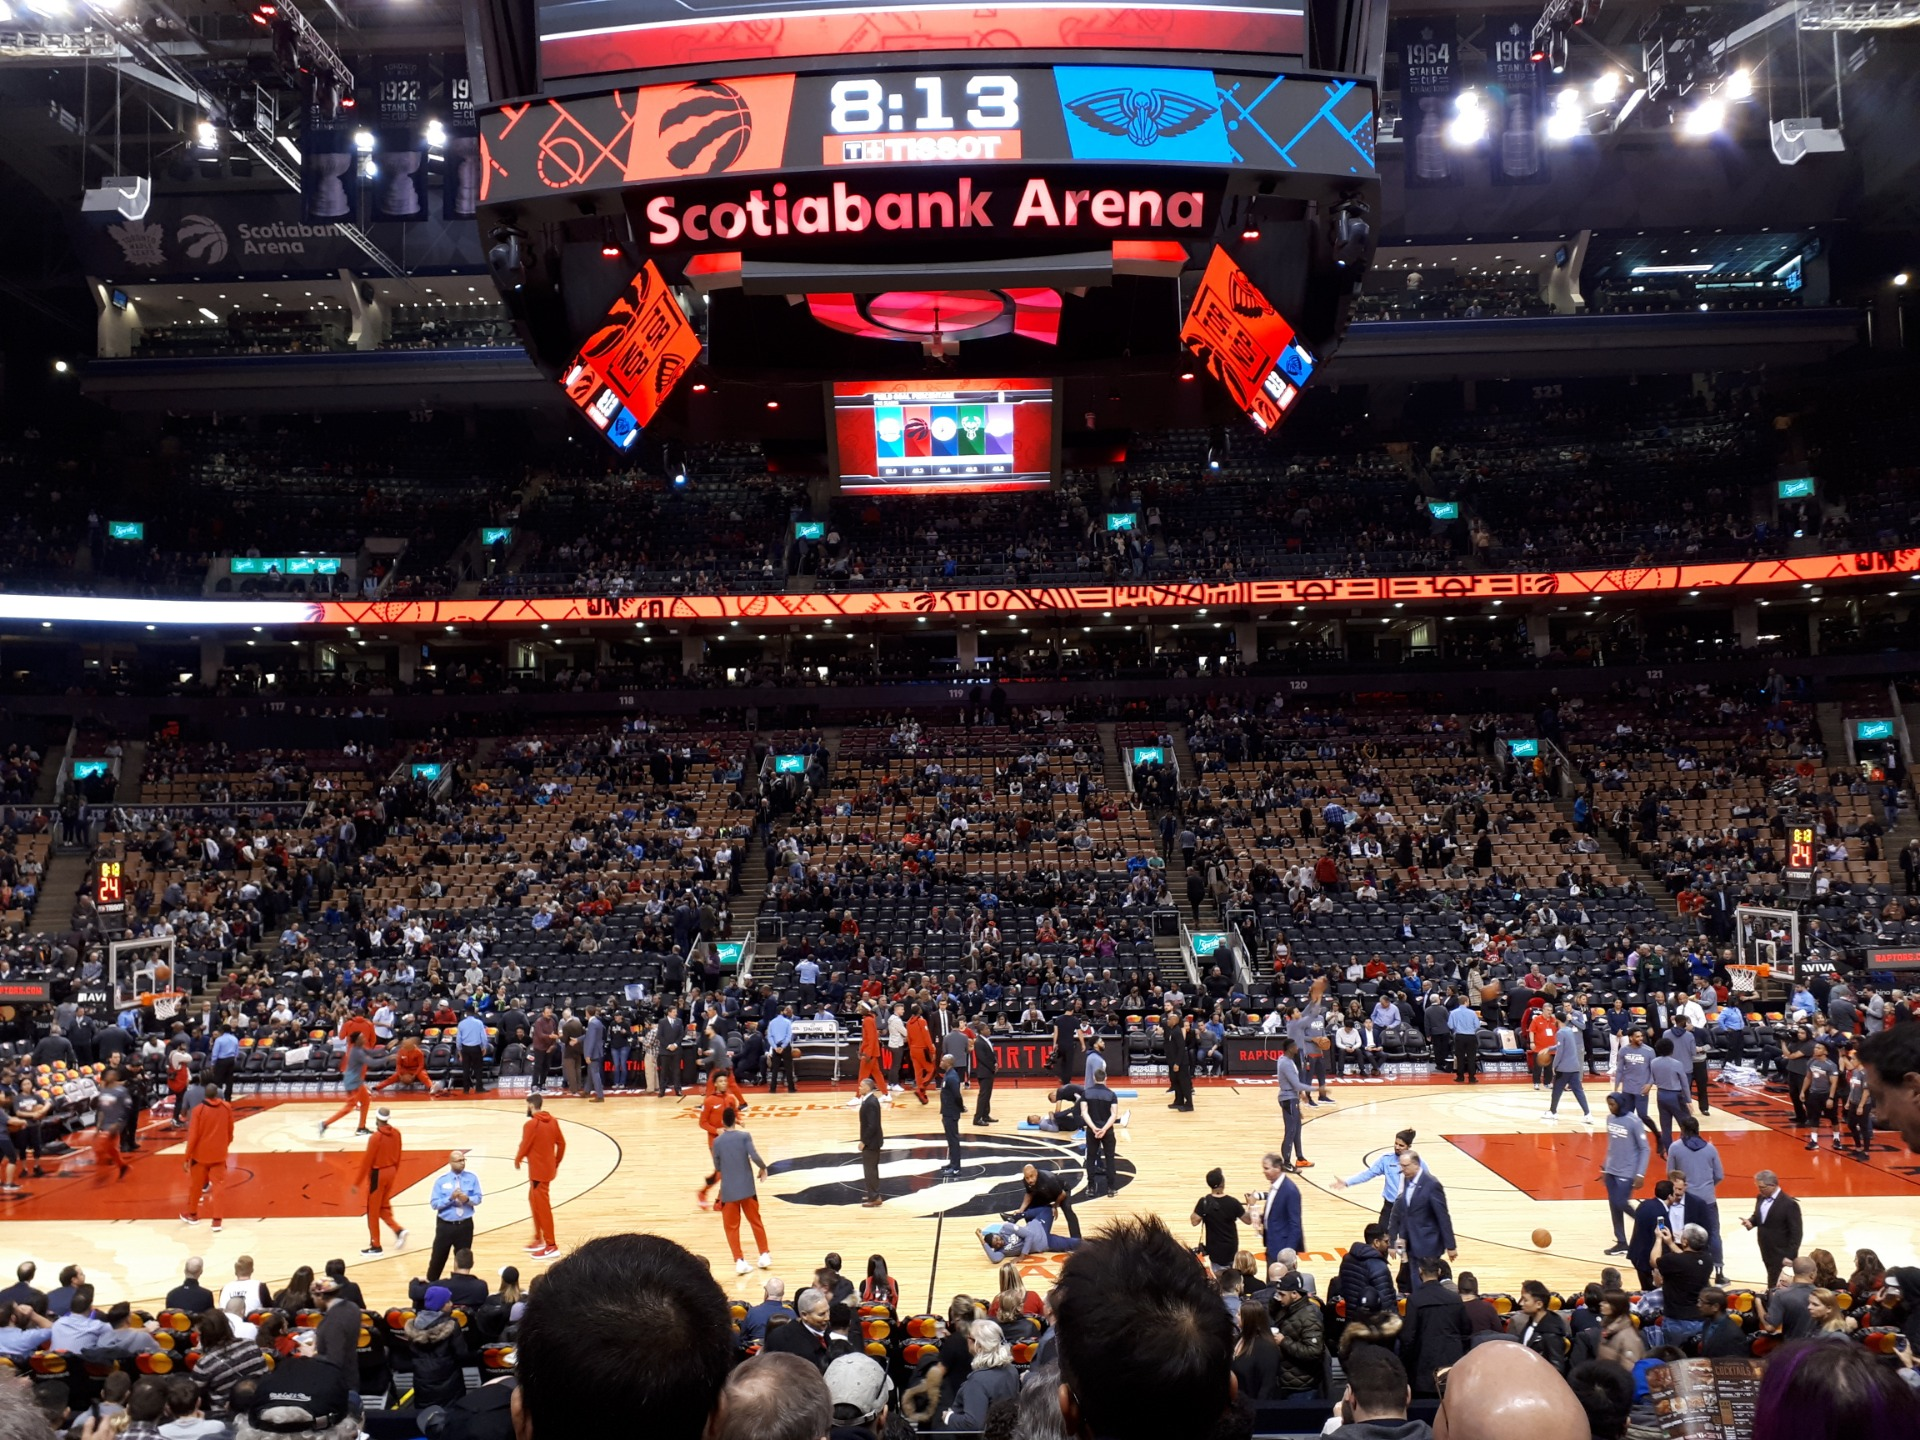 Scotiabank Arena Section 108 Row 15 Seat 11